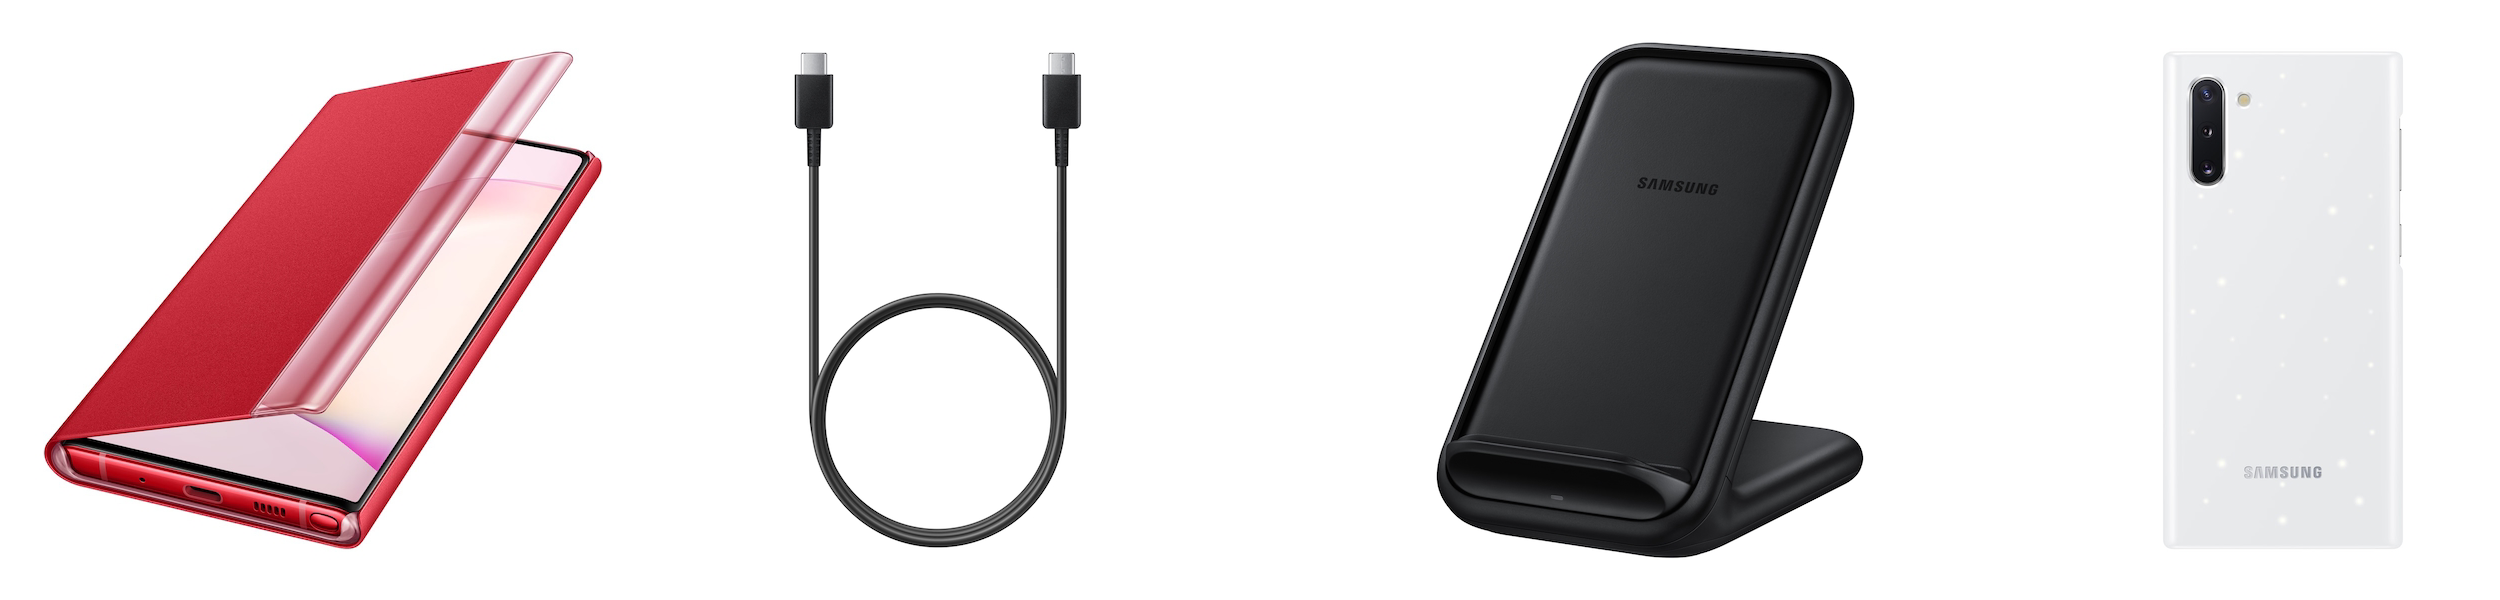 Gear Up: The official Samsung Galaxy Note 10 accessories